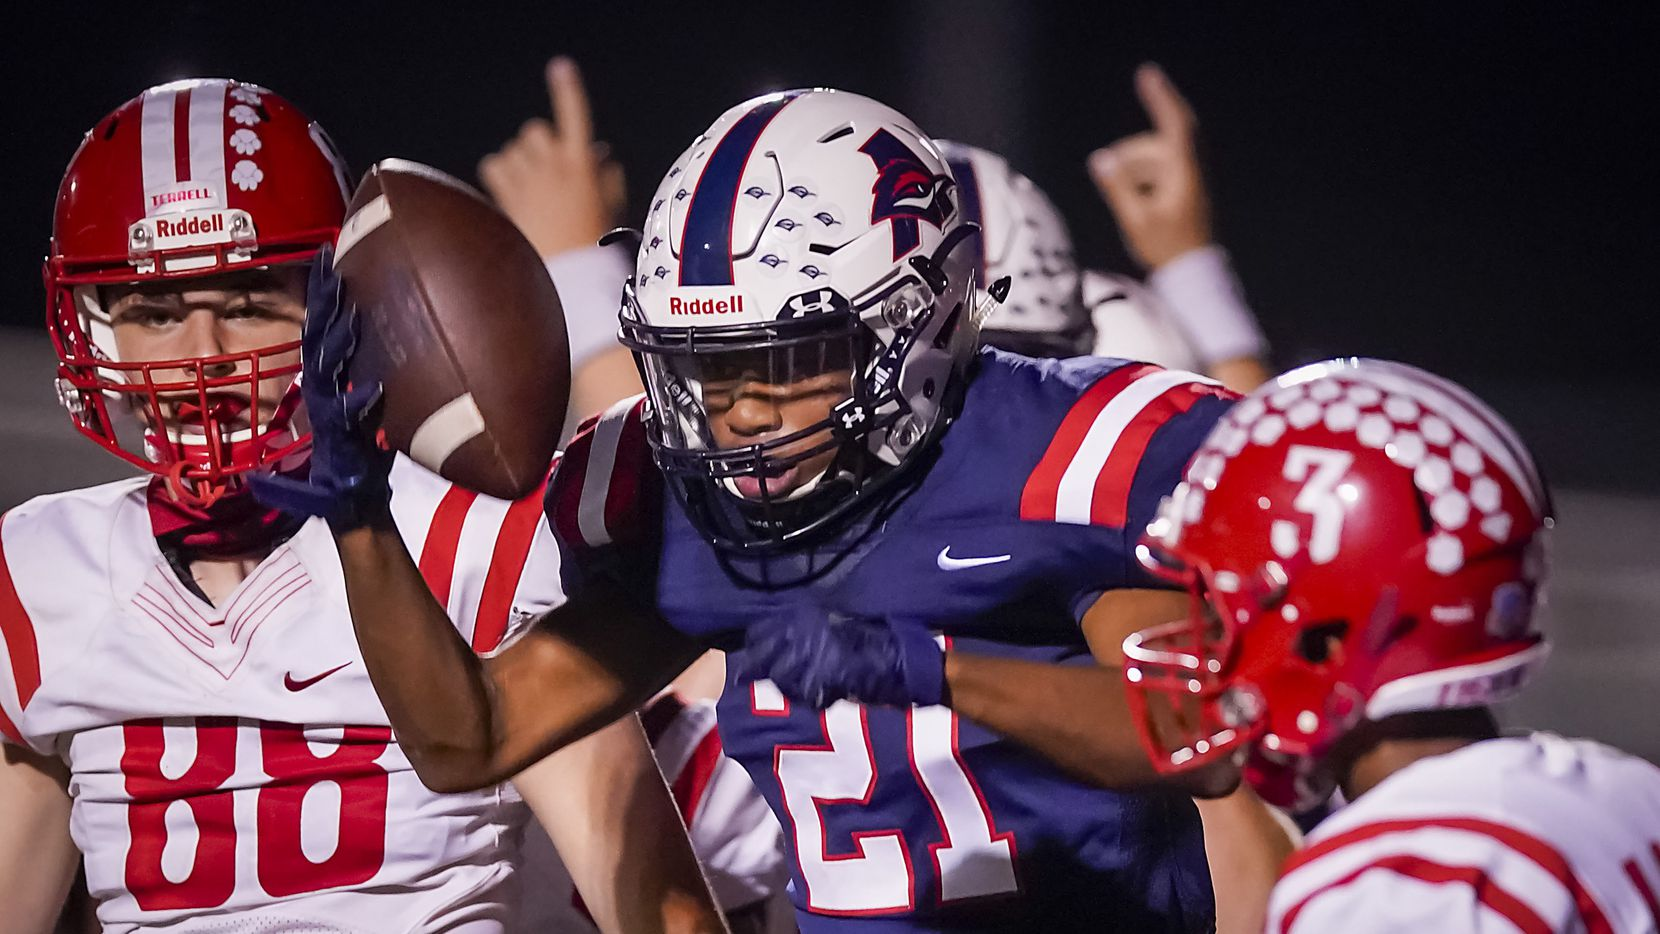 Aubrey running back  Braylon Colgrove (21) celebrates after rushing for a touchdown during the first half of a high school football game against Terrell on Friday, Sept. 18, 2020, in Aubrey, Texas.